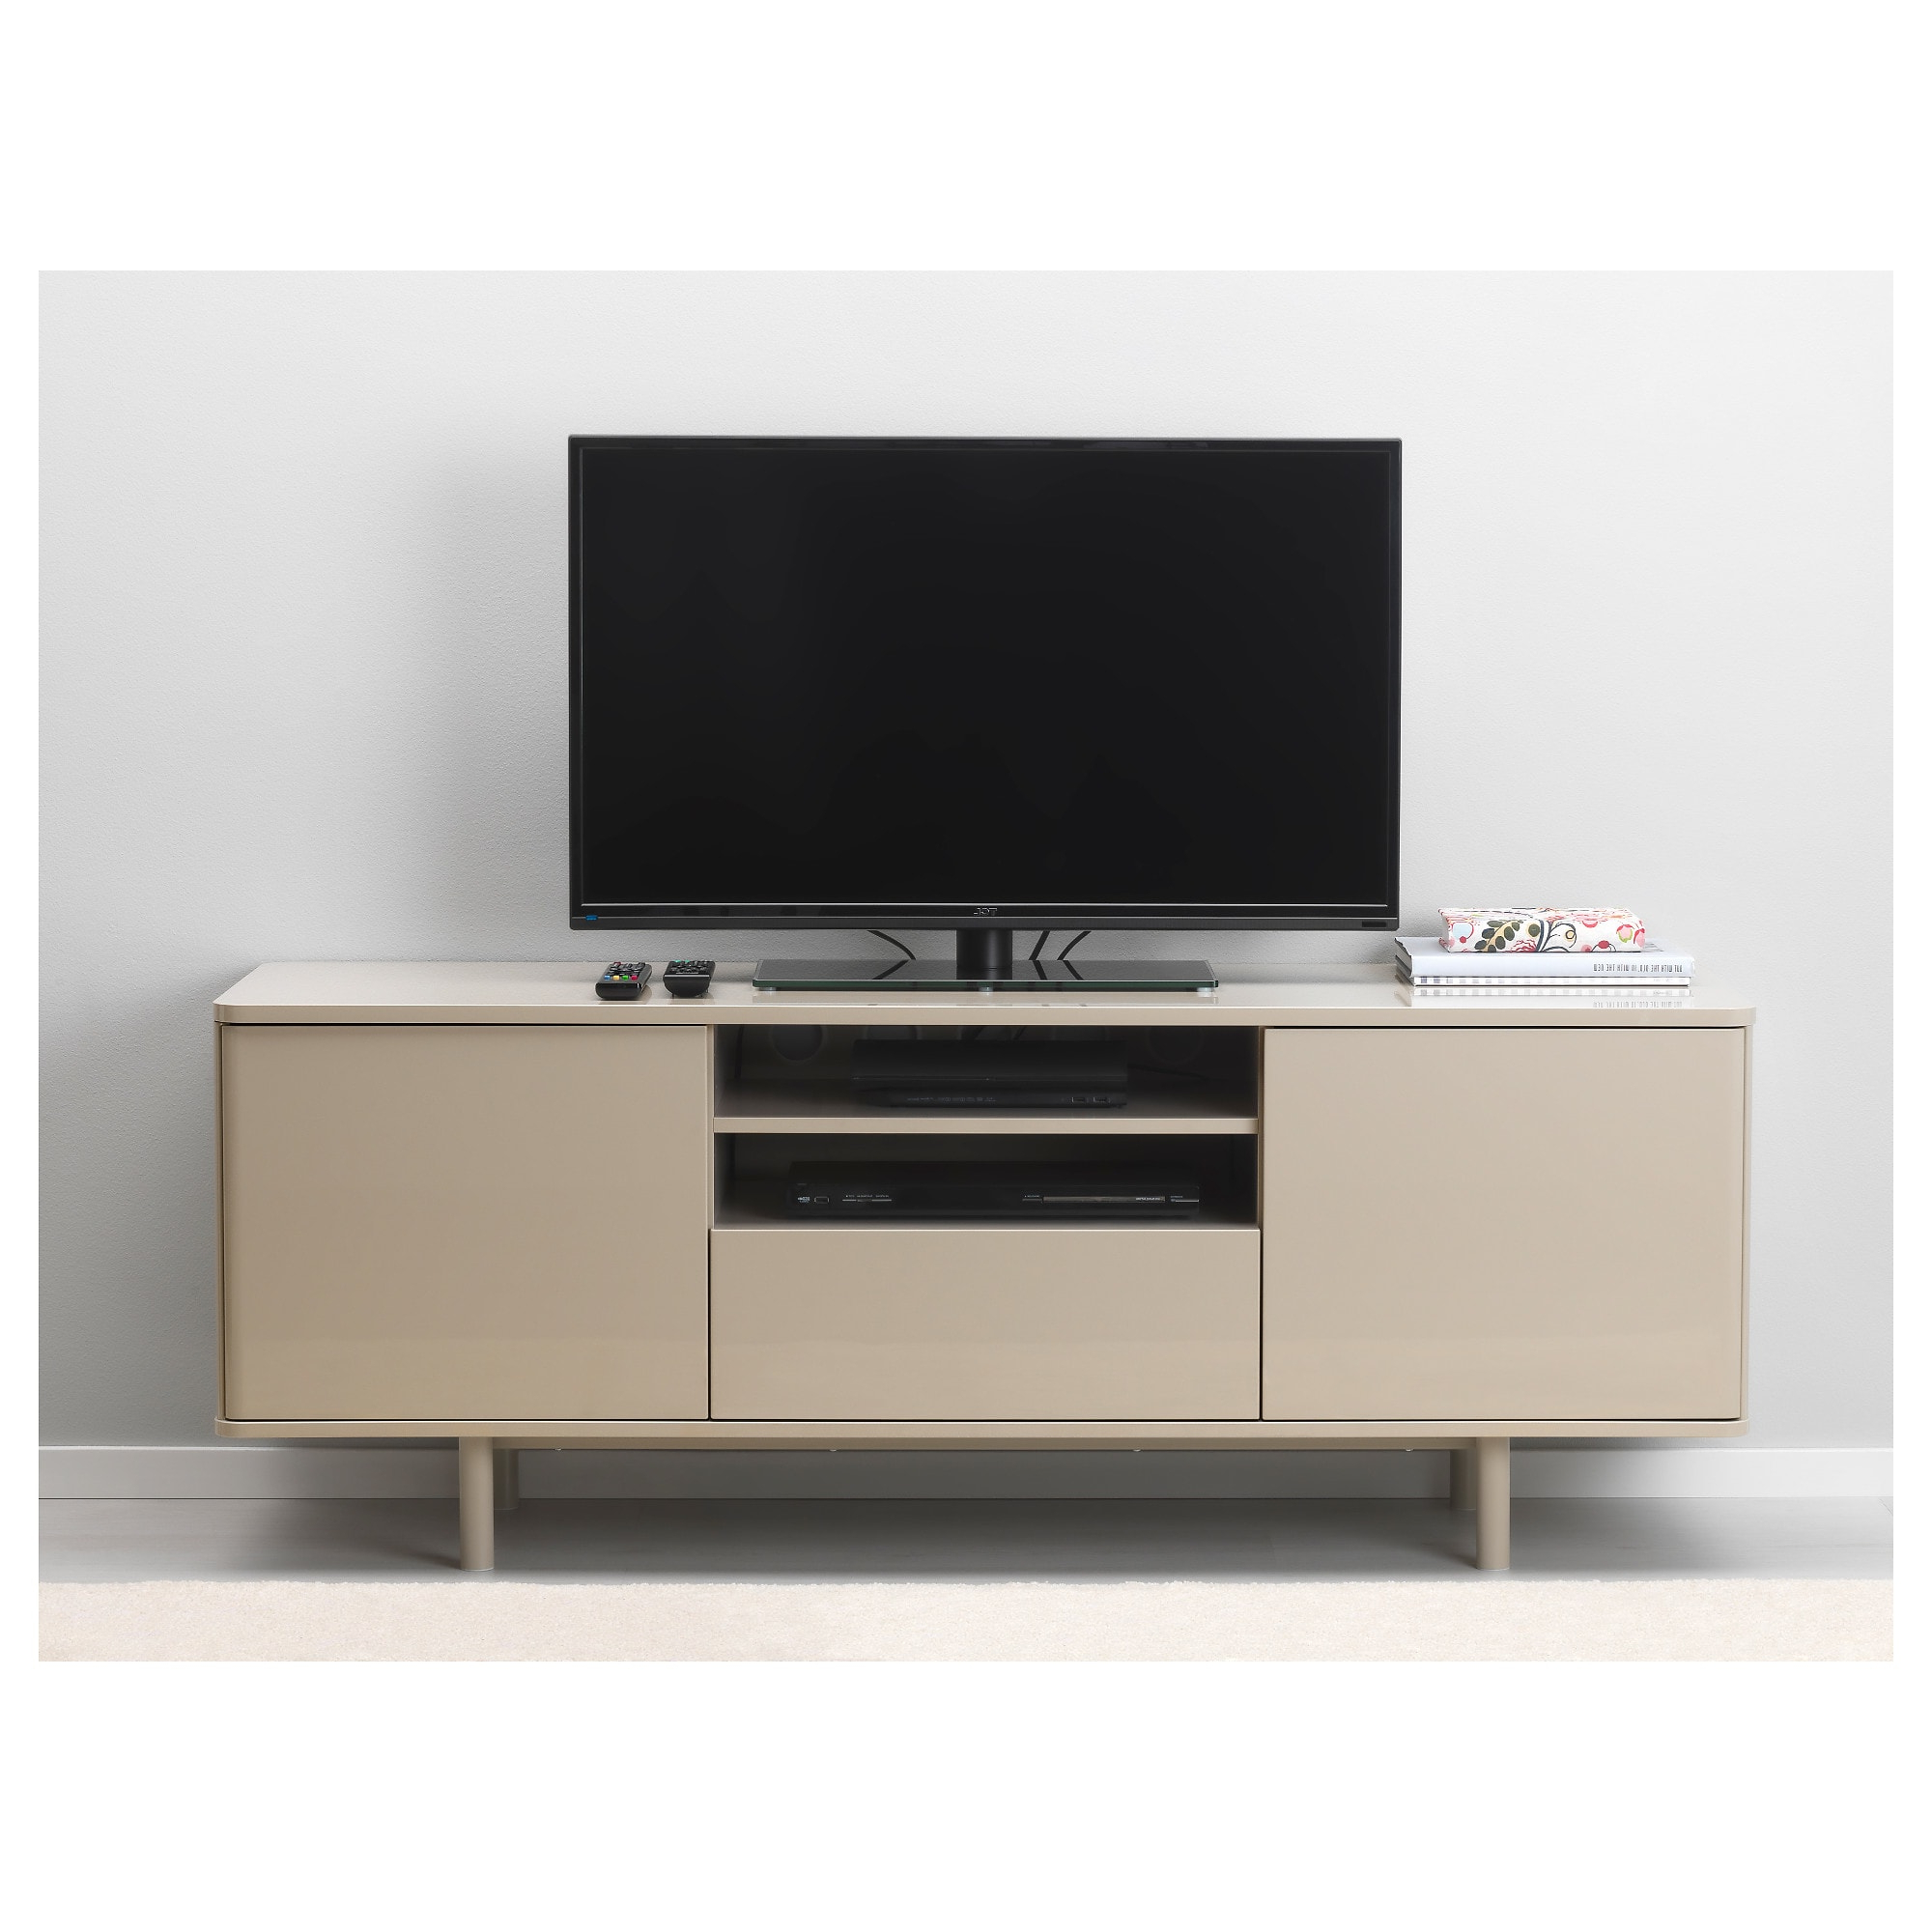 Recent White Gloss Tv Benches Throughout Mostorp Tv Bench High Gloss Beige 160 X 47 X 60 Cm – Ikea (View 13 of 20)